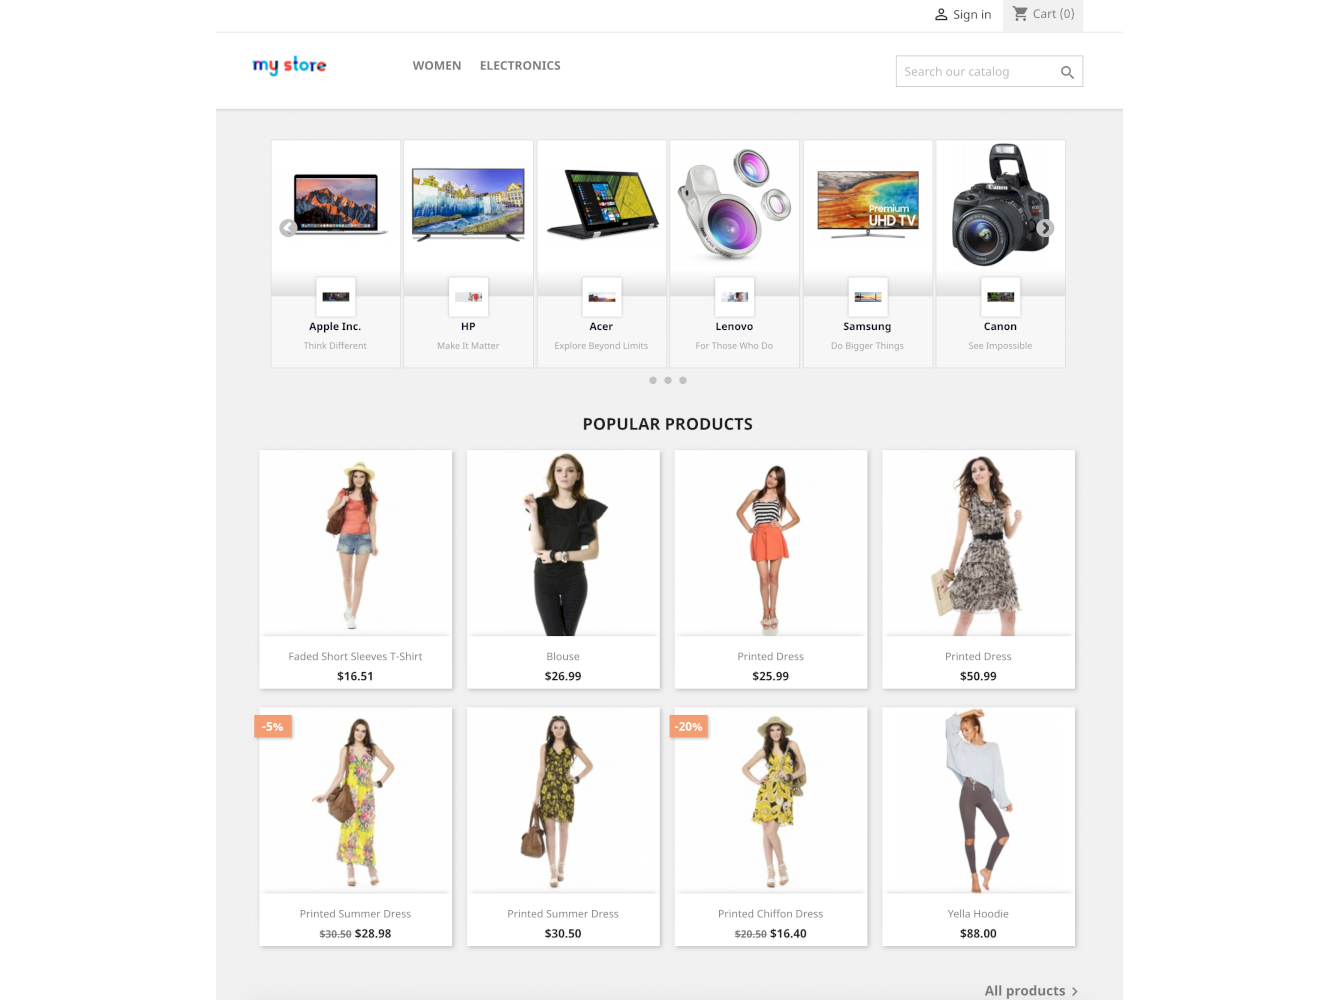 Brands Manufacturers Wall: Listing promo block Module